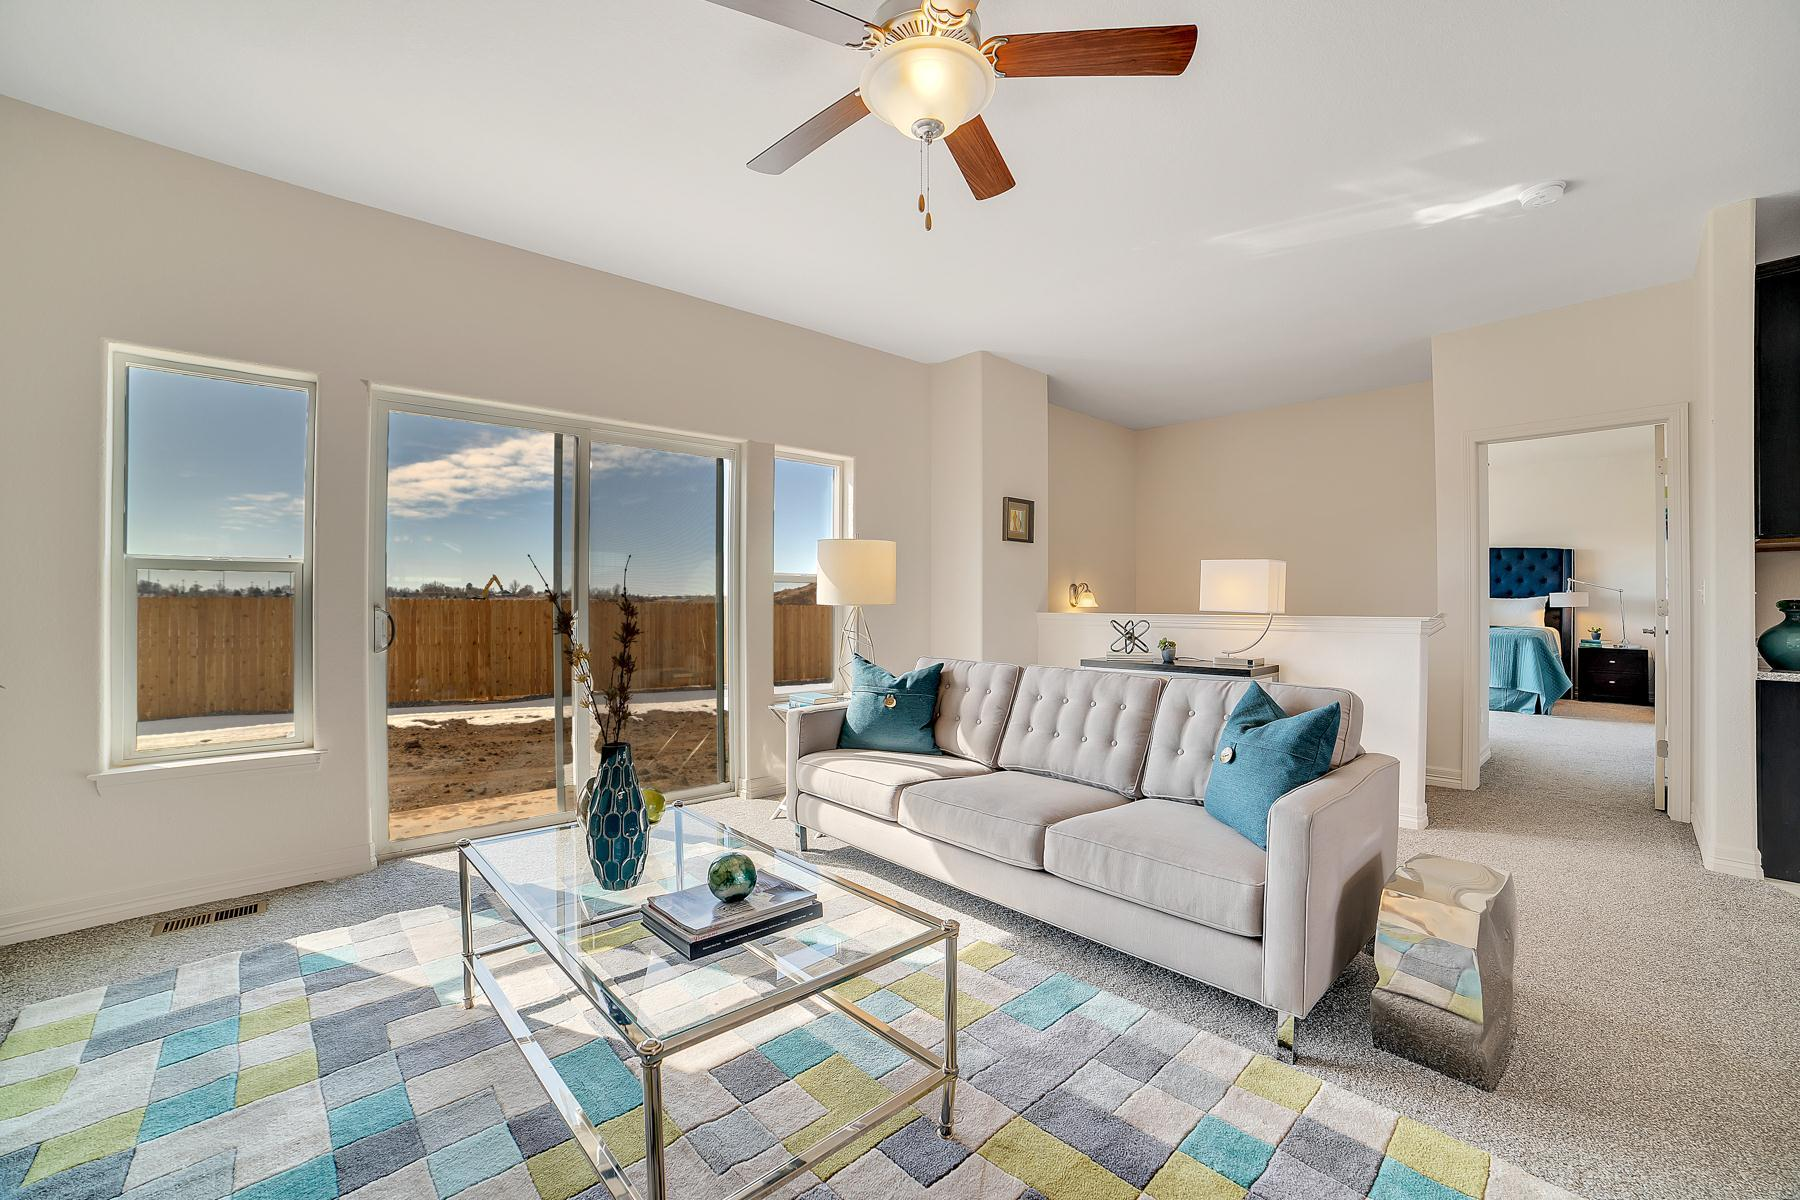 Living Area featured in the Primrose at Blackstone Ranch By Pauls Homes in Denver, CO